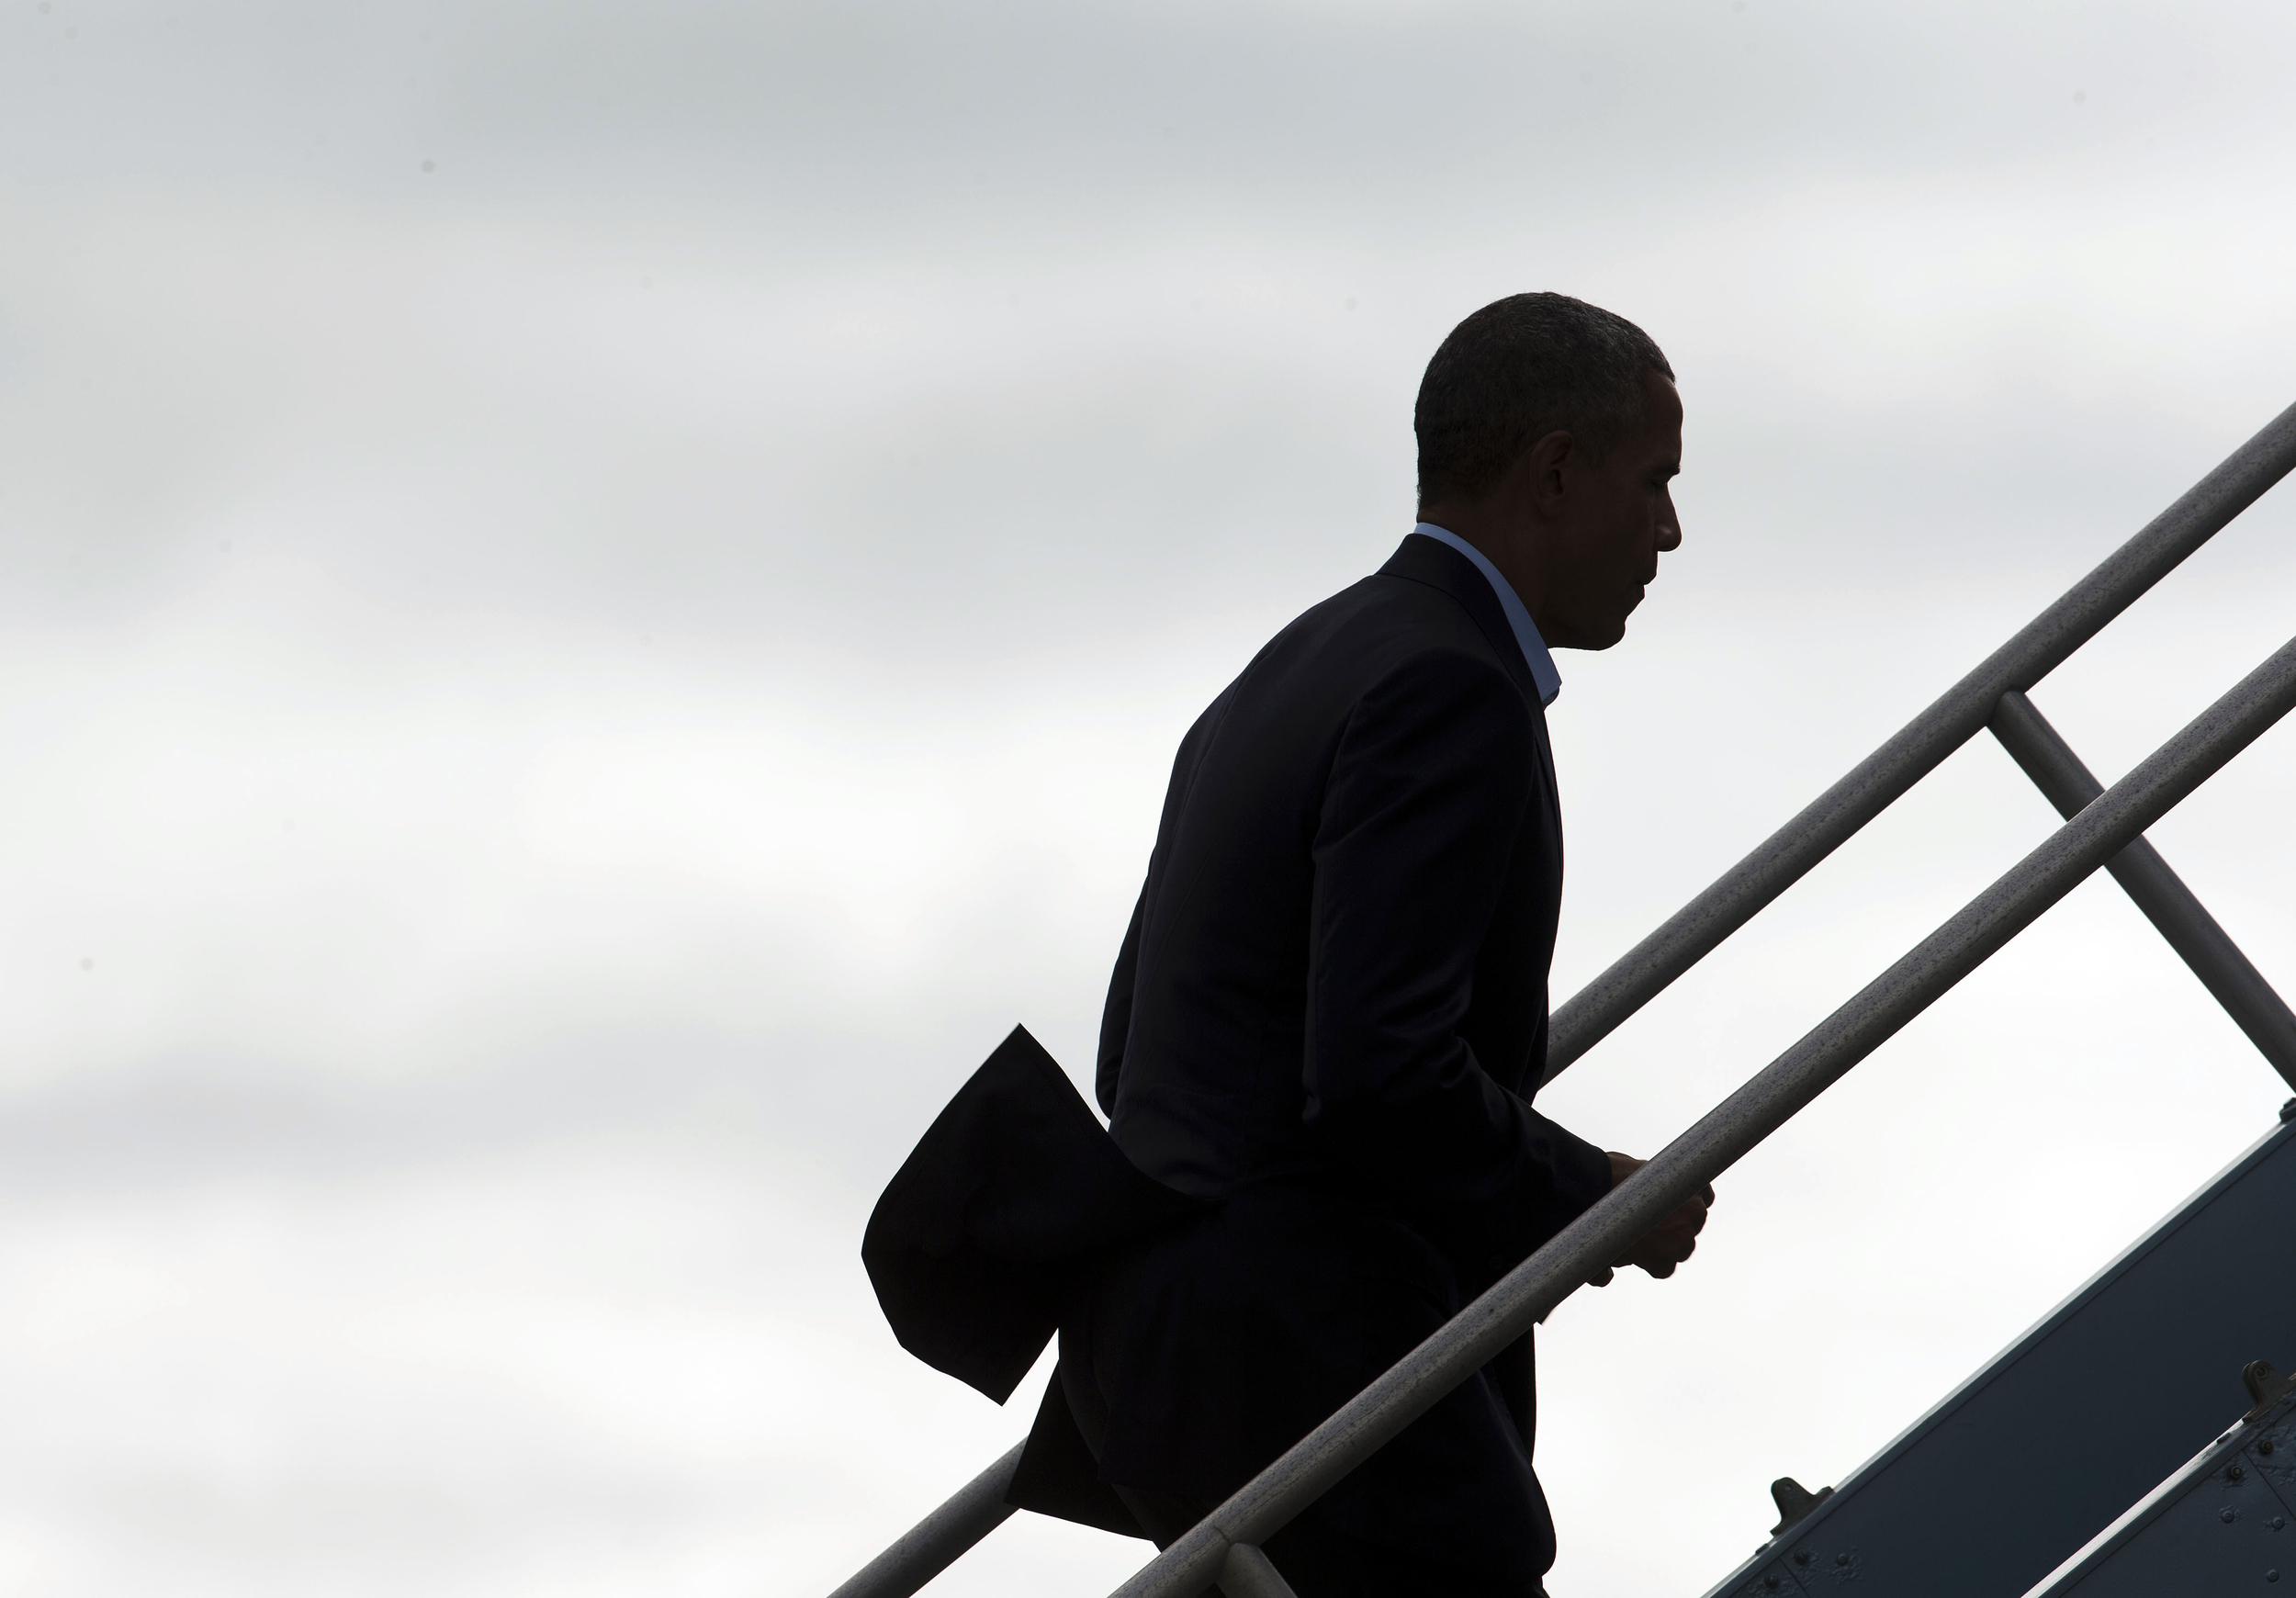 President Barack Obama goes up the stairs as he boards Air Force One at San Francisco International Airport, Saturday, Oct. 10, 2015 in San Francisco. Obama is on a four-day West Coast tour that includes democratic fundraisers along the way. (Pablo Martinez Monsivais/AP)